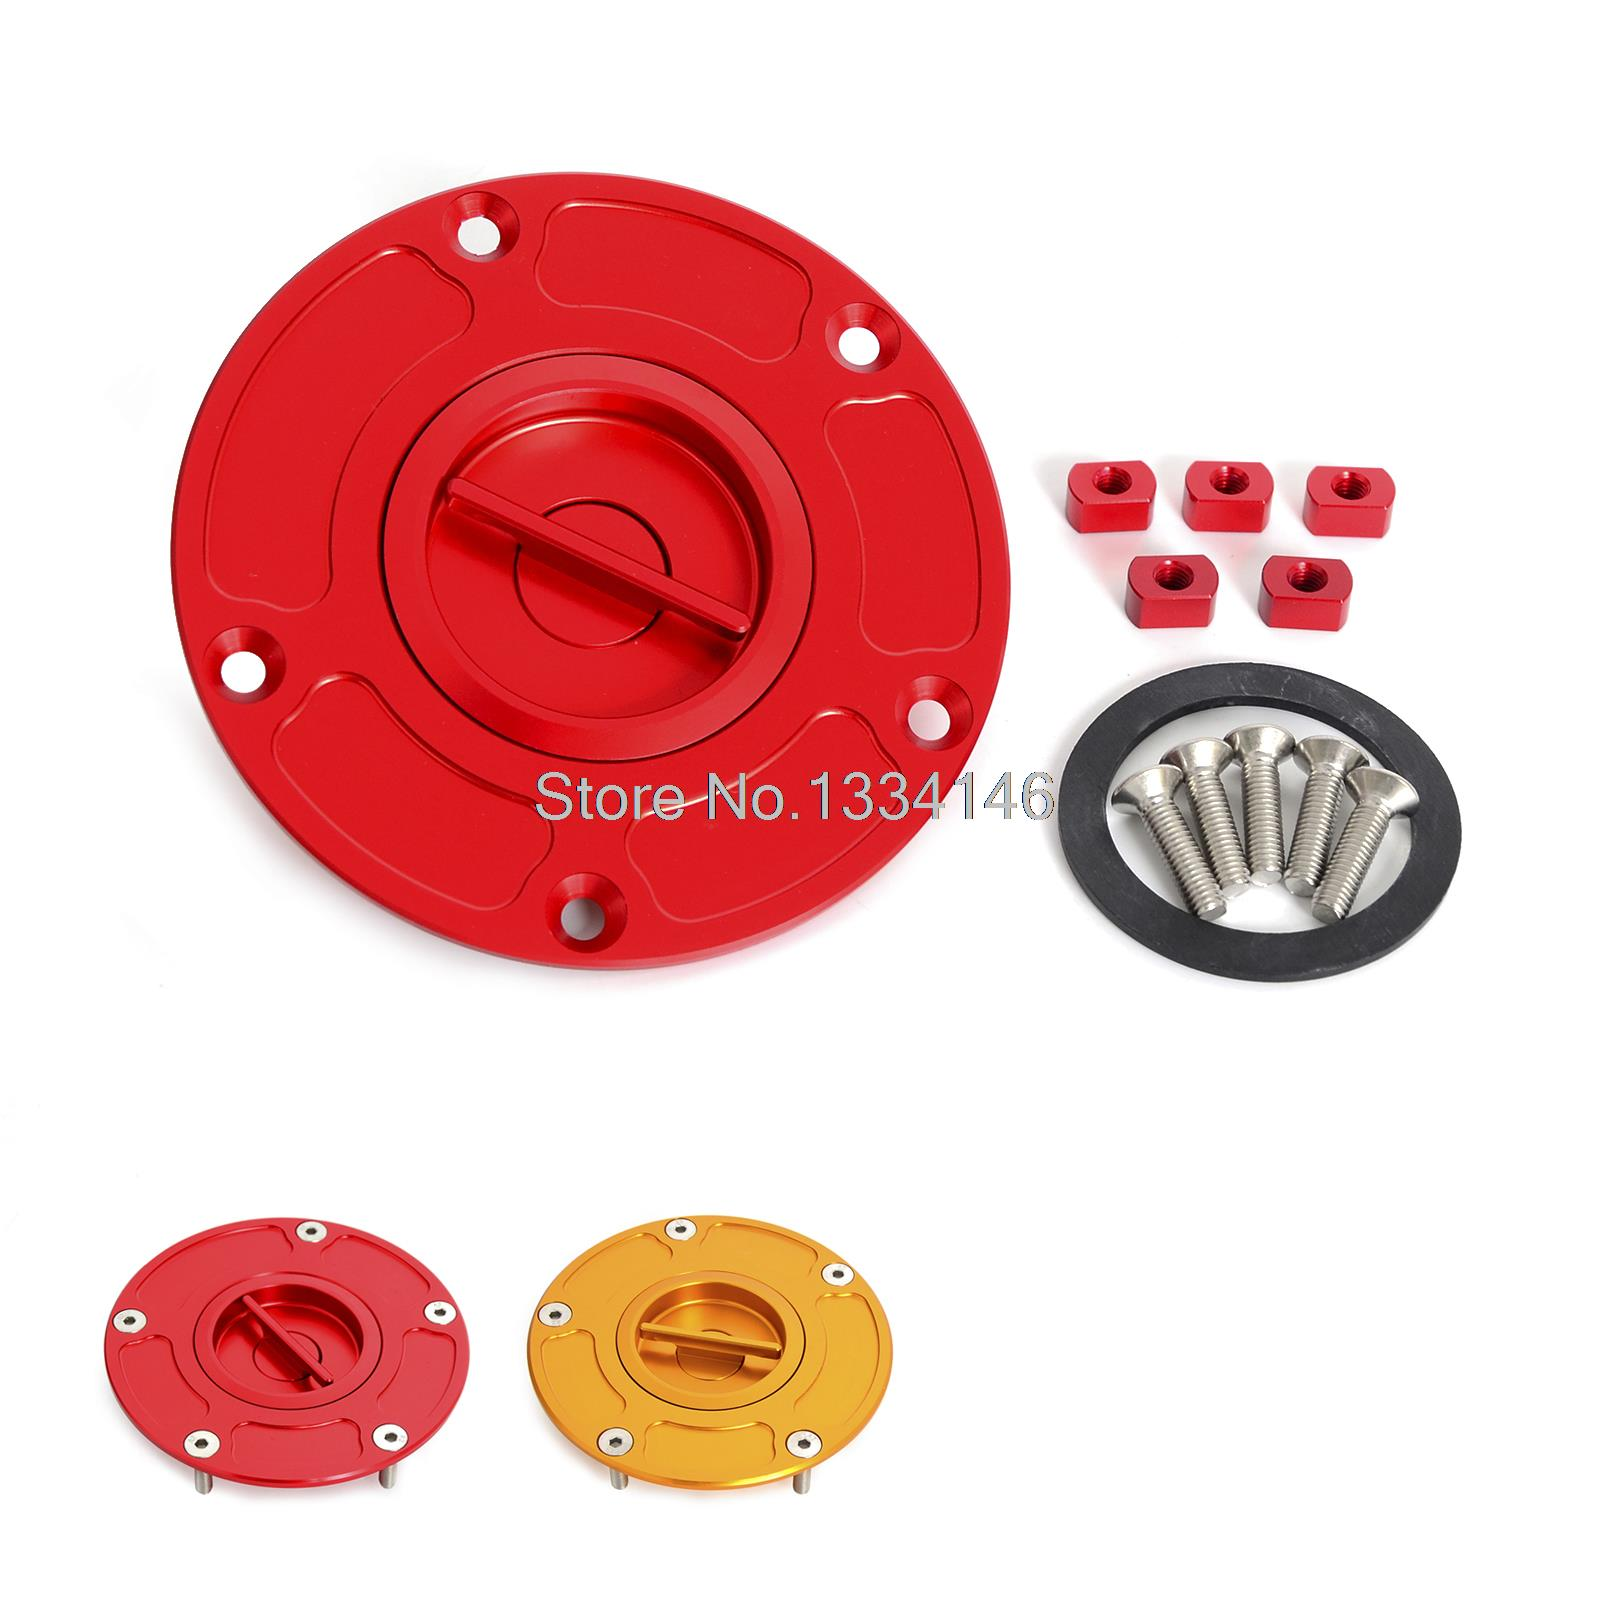 Aluminum Fuel Gas Cap Anodized Fit For DUCATI MONSTER 696 / 796 / 1100 / EVO - All Years aluminum fuel gas cap anodized fit for ducati monster 696 796 1100 evo all years